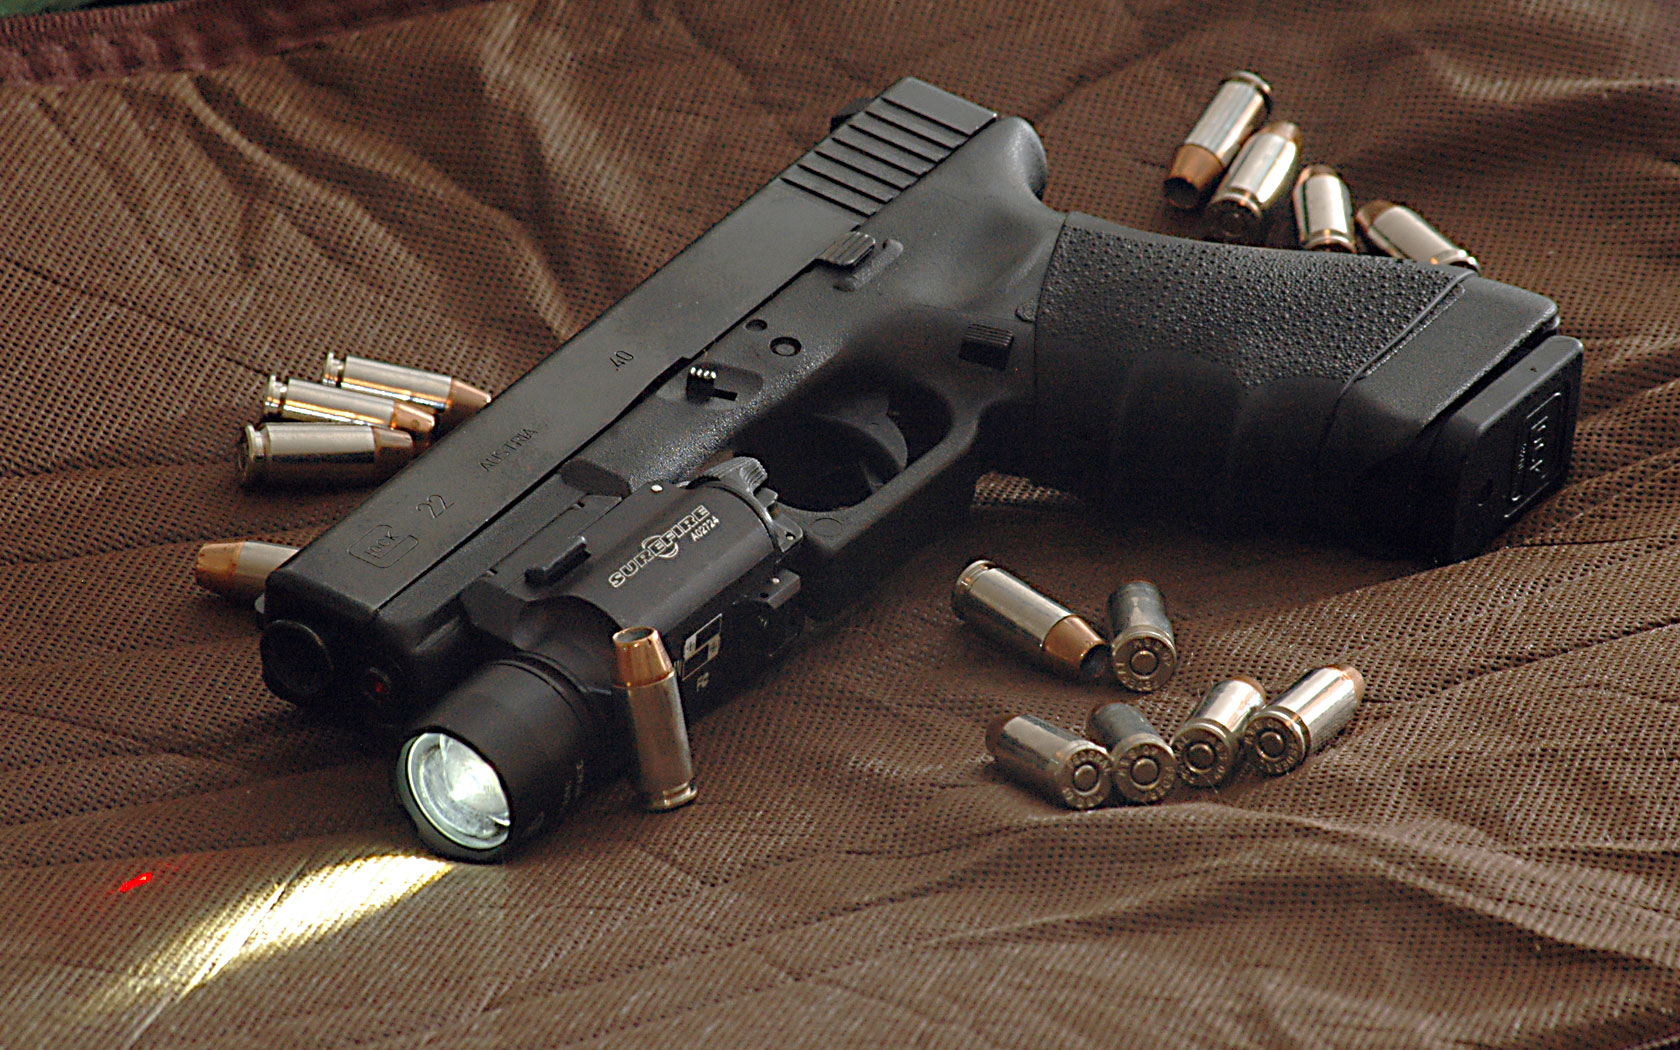 File:Glock 22 surrounded by .40 Hydra-shok bullets.jpg ...